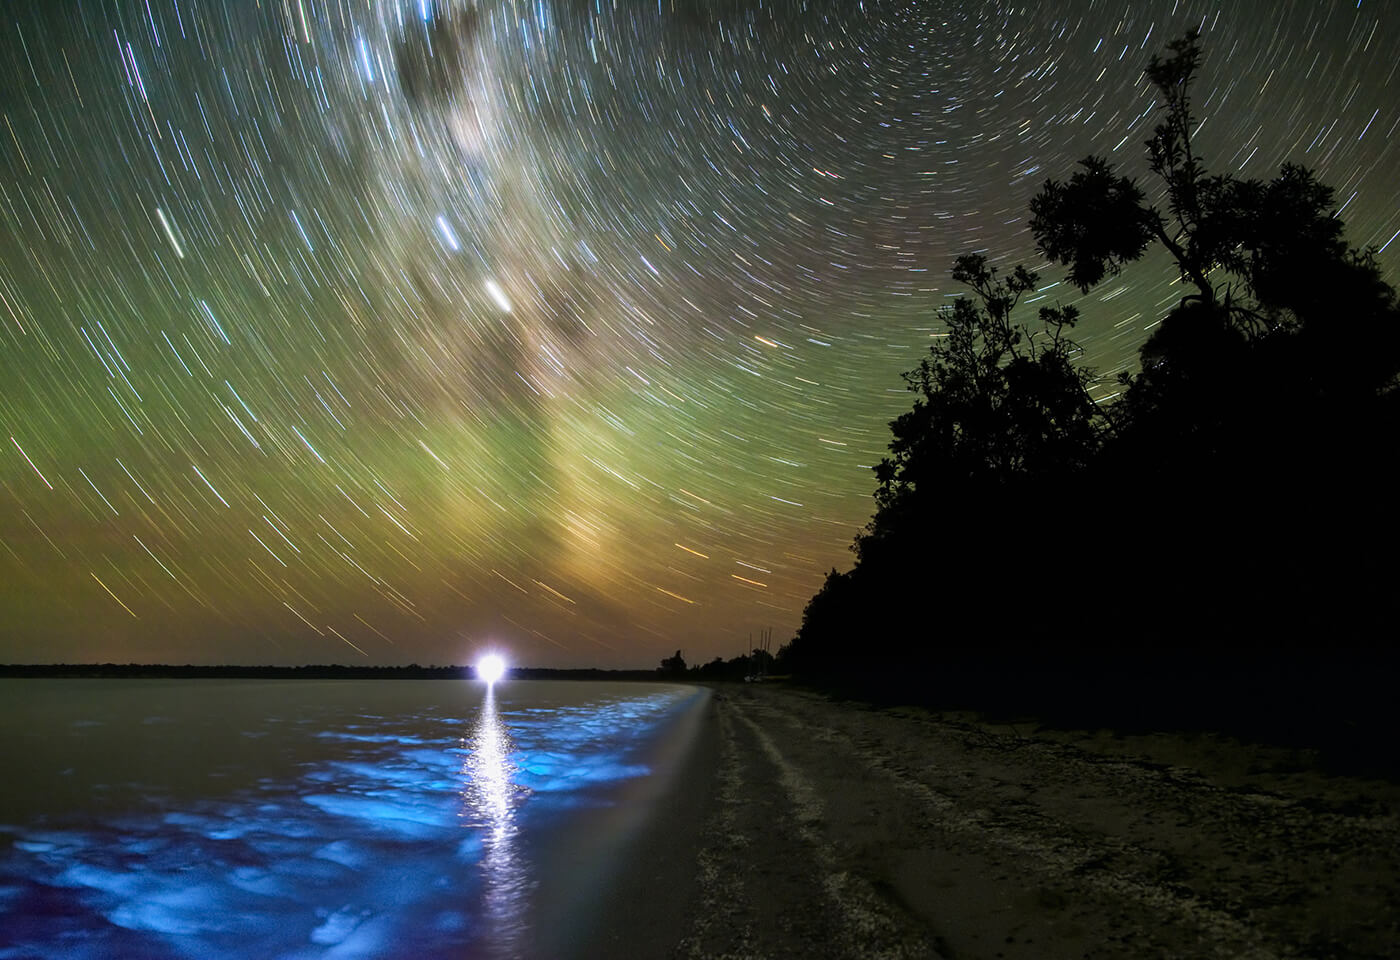 Bioluminescence at Gippsland Lakes